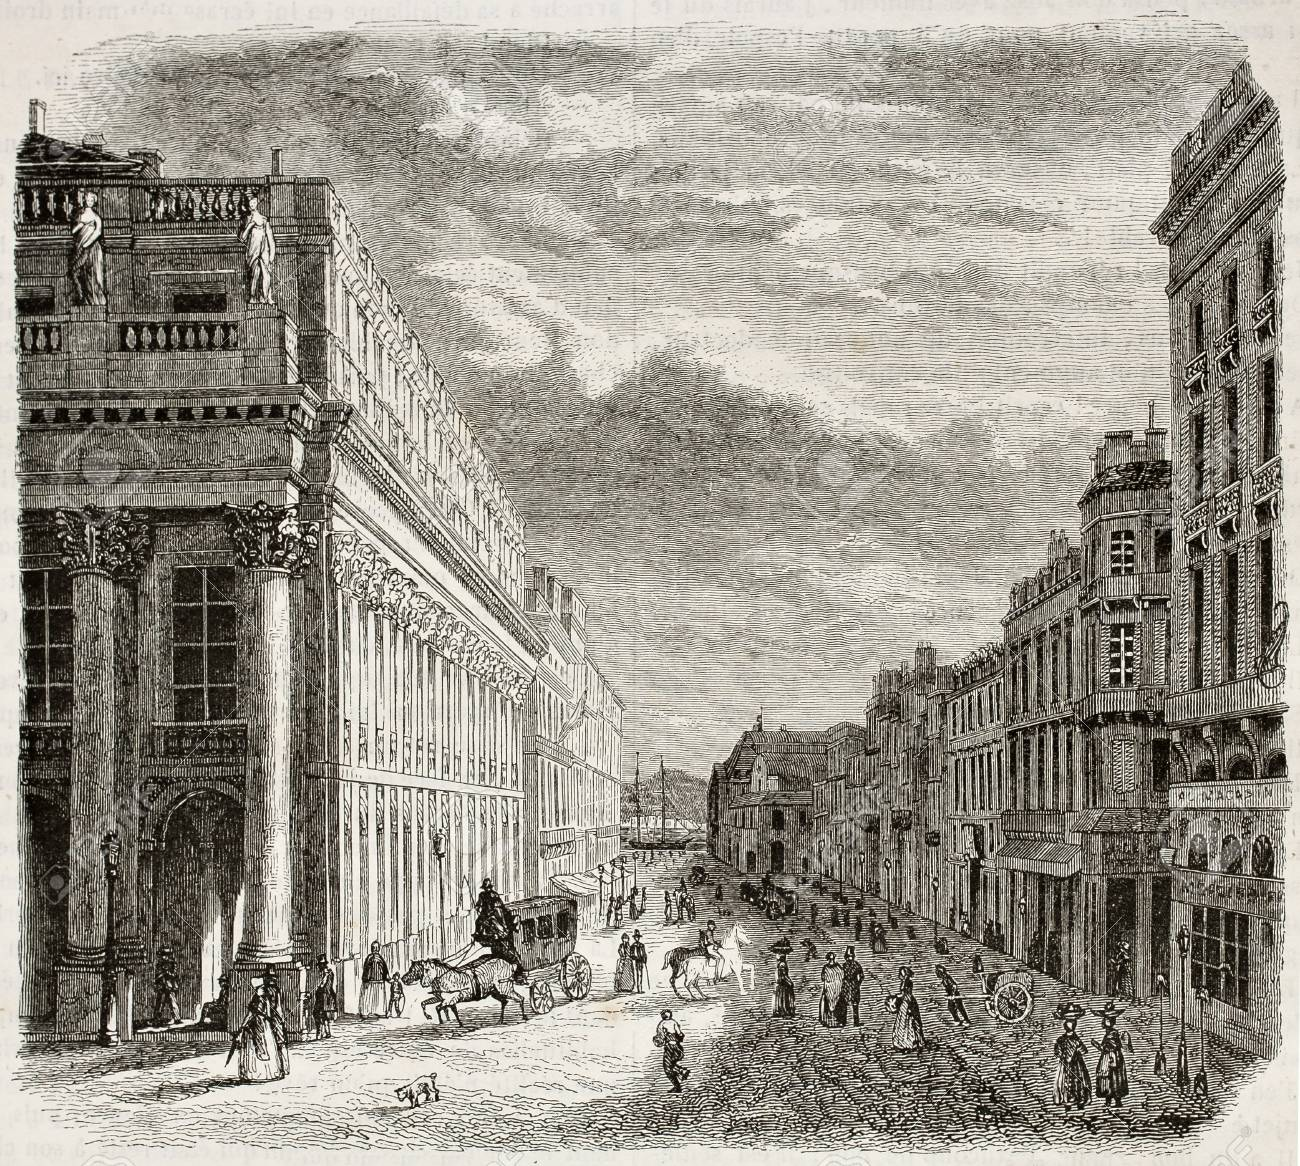 Rue du Chapeaux Rouge old view, Bordeaux, France. Created by Drouyn and Pagny, published on Magasin Pittoresque, Paris, 1844 - 15270138